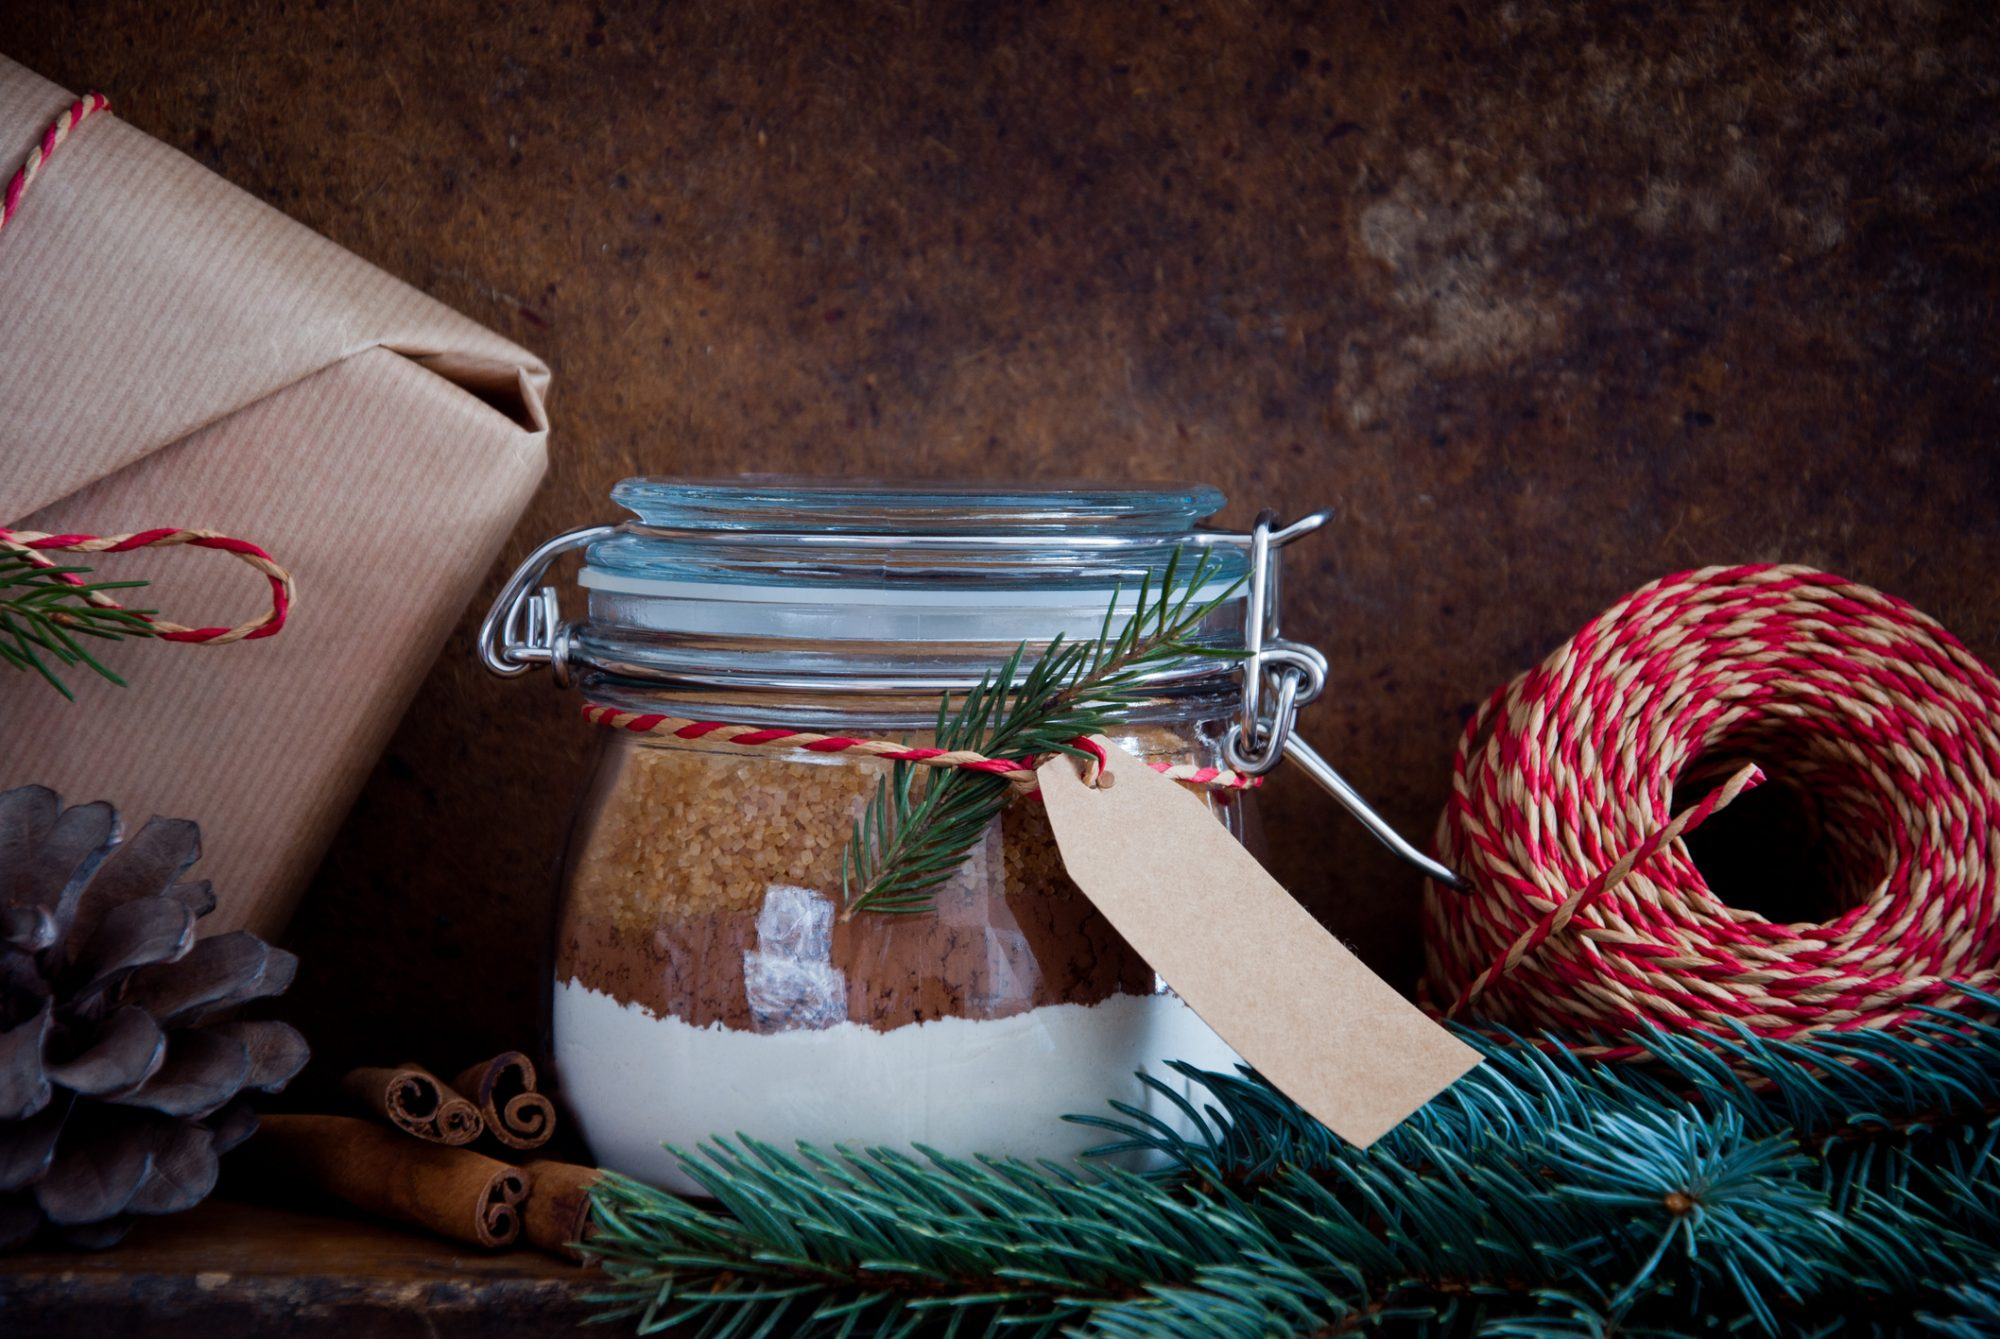 Our Best DIY Food Gifts for Every Budget and Skill Level